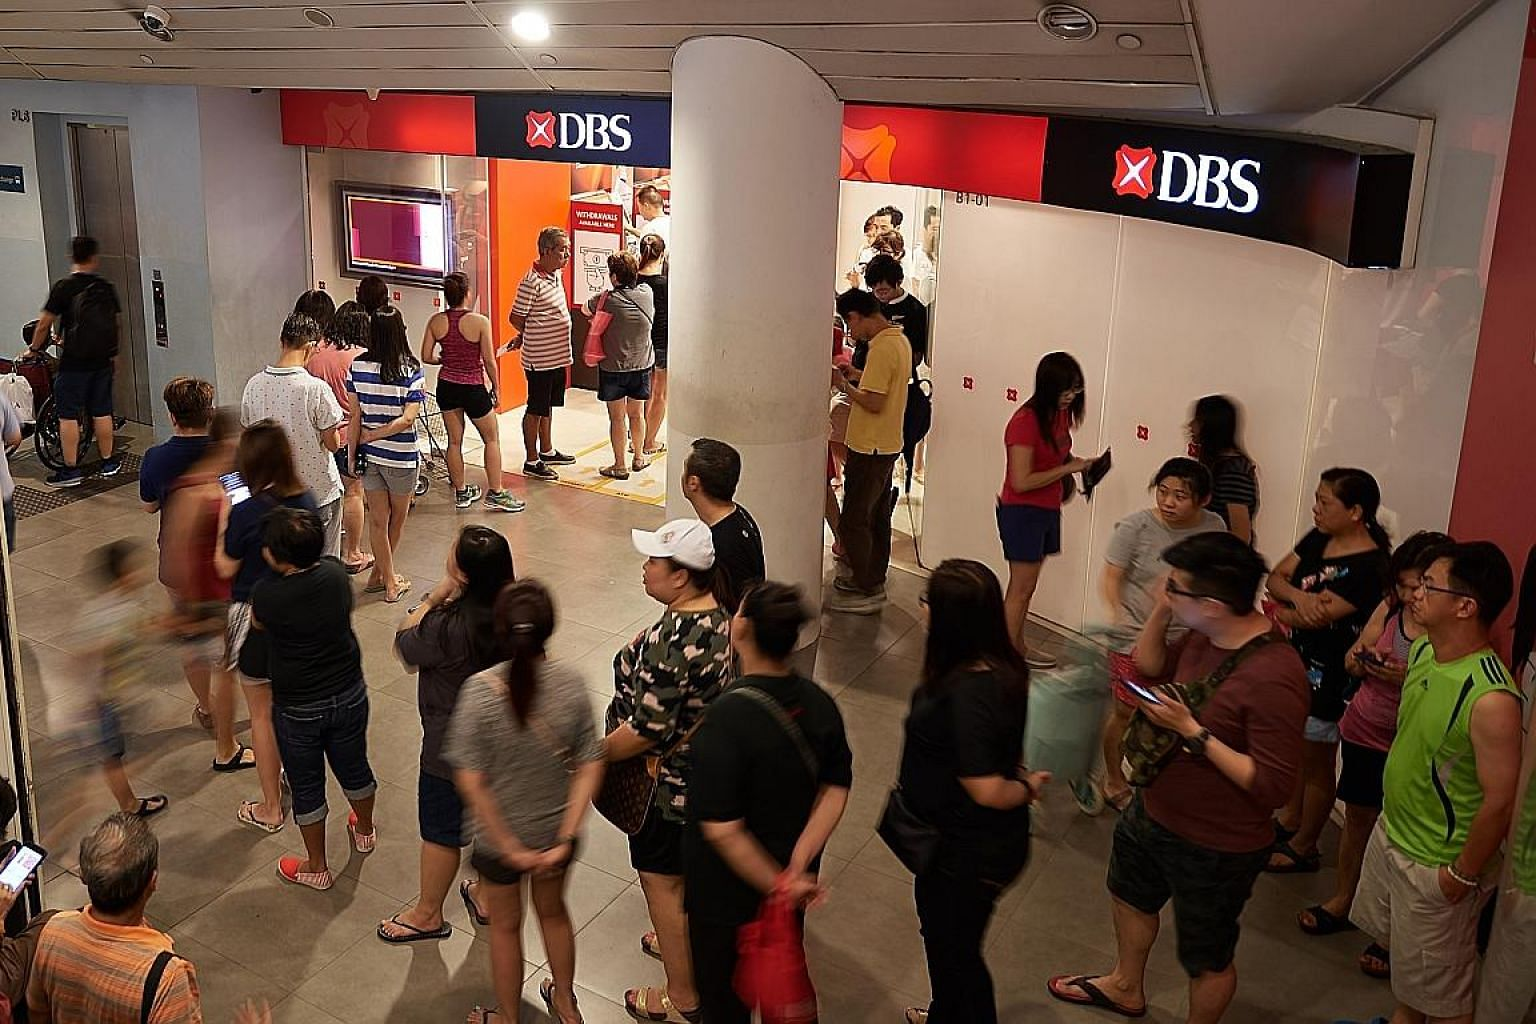 DBS is proposing a final dividend of 60 cents a share for 2017 - double that of last year - and also a special dividend of 50 cents a share, as a one-time return of capital buffers that had been built up, as well as to mark its 50th anniversary.